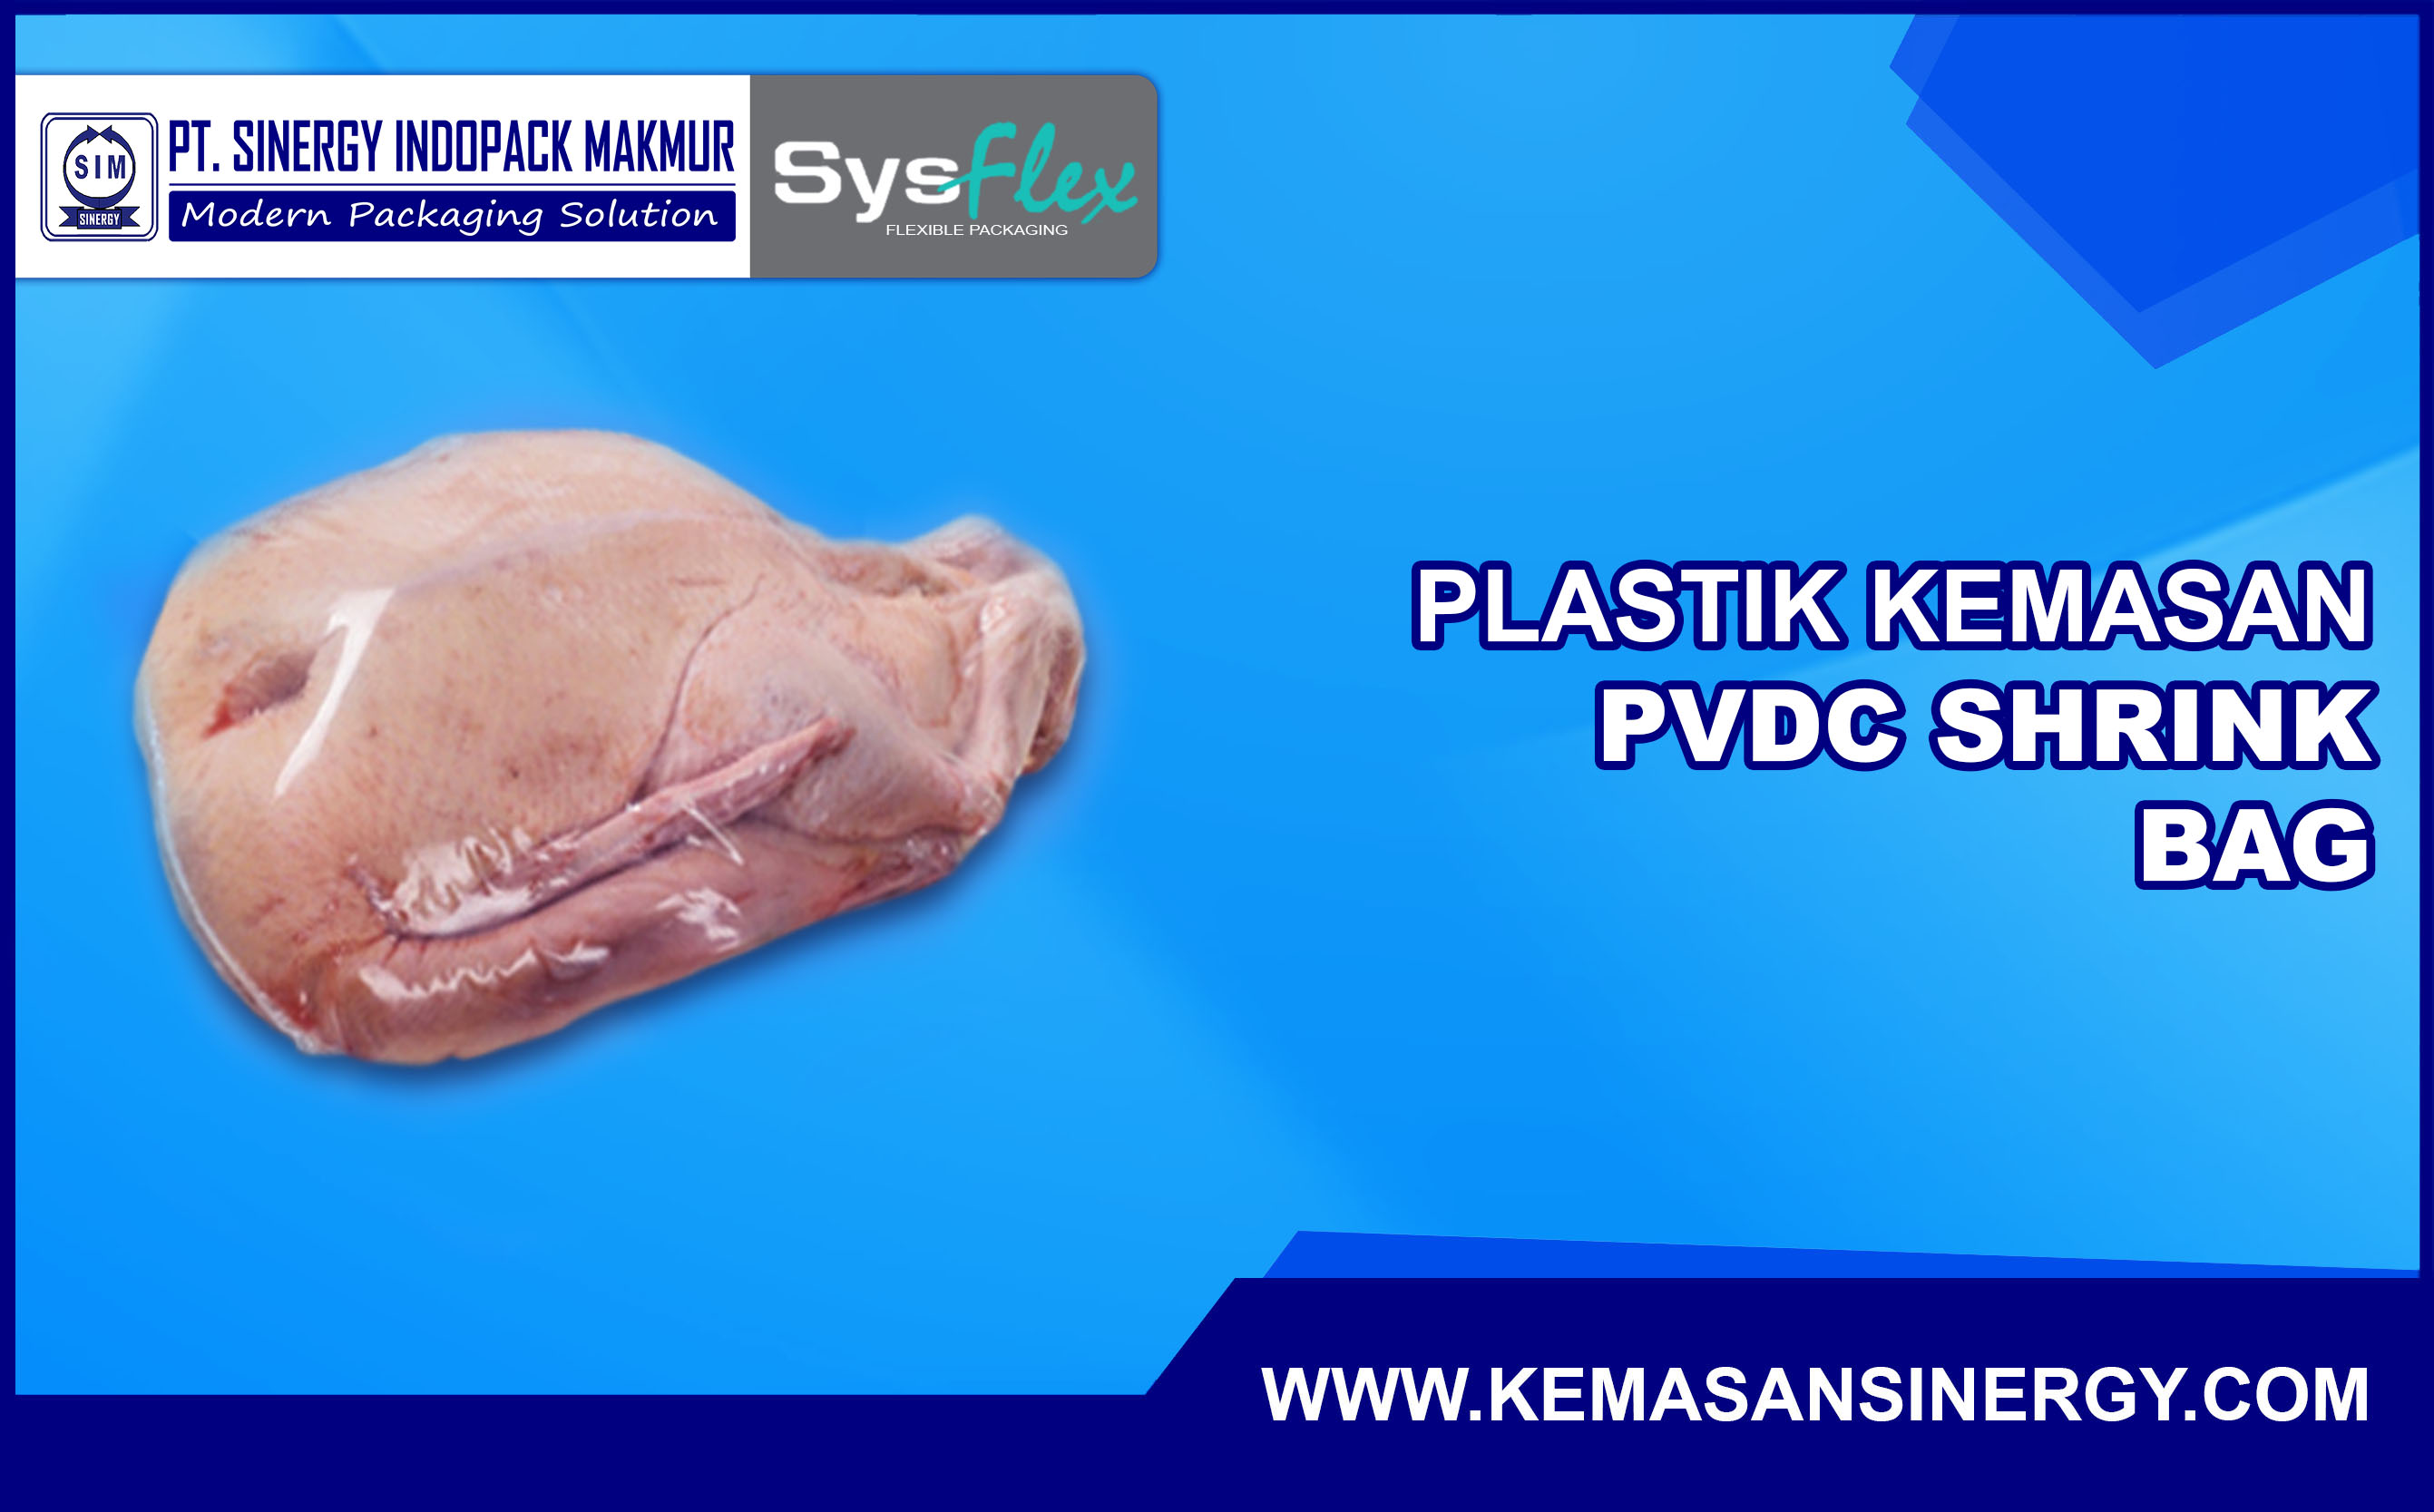 Plastik Kemasan PVDC Shrink Bag